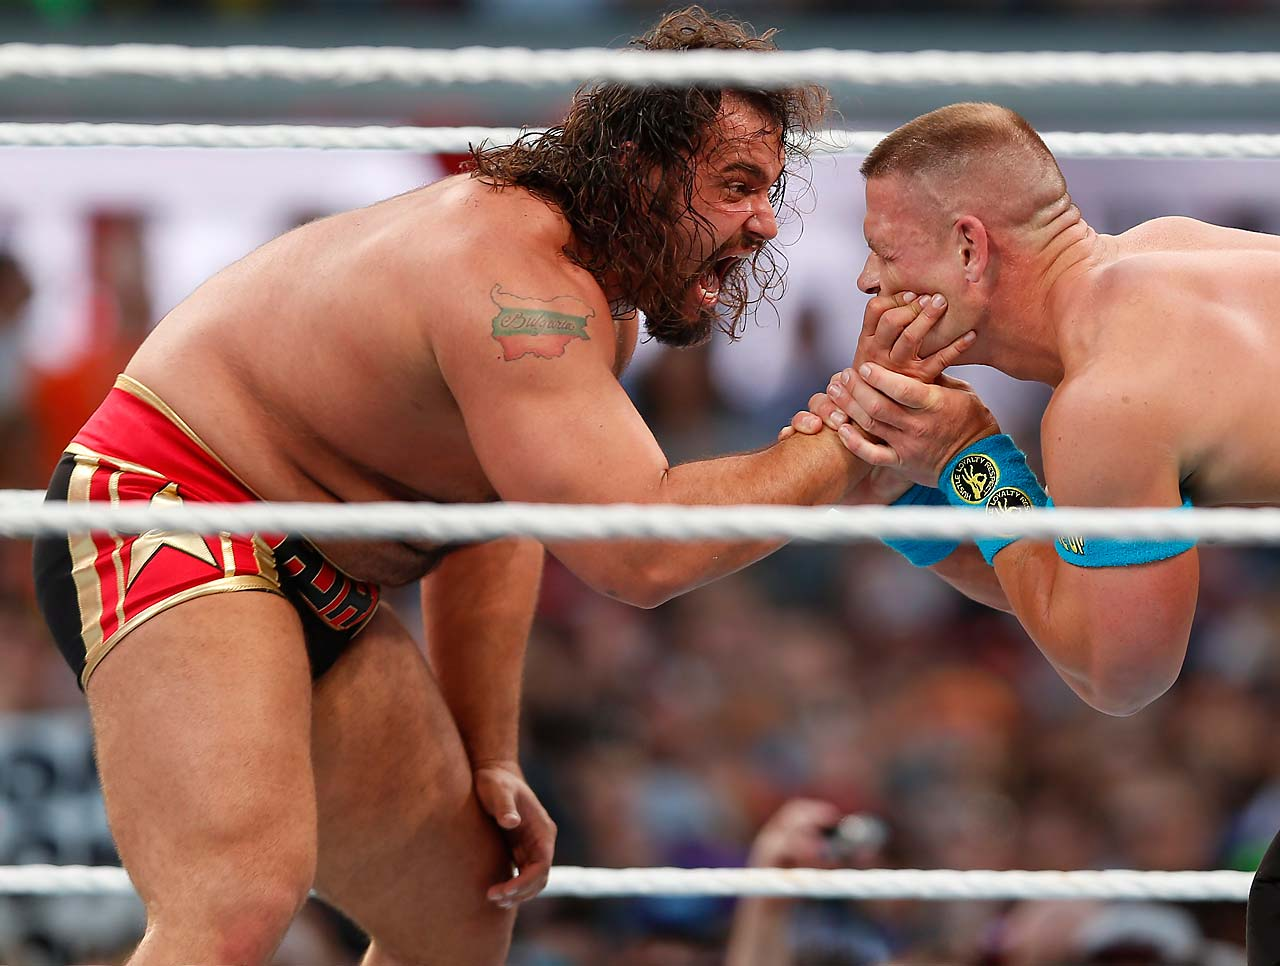 Rusev and John Cena